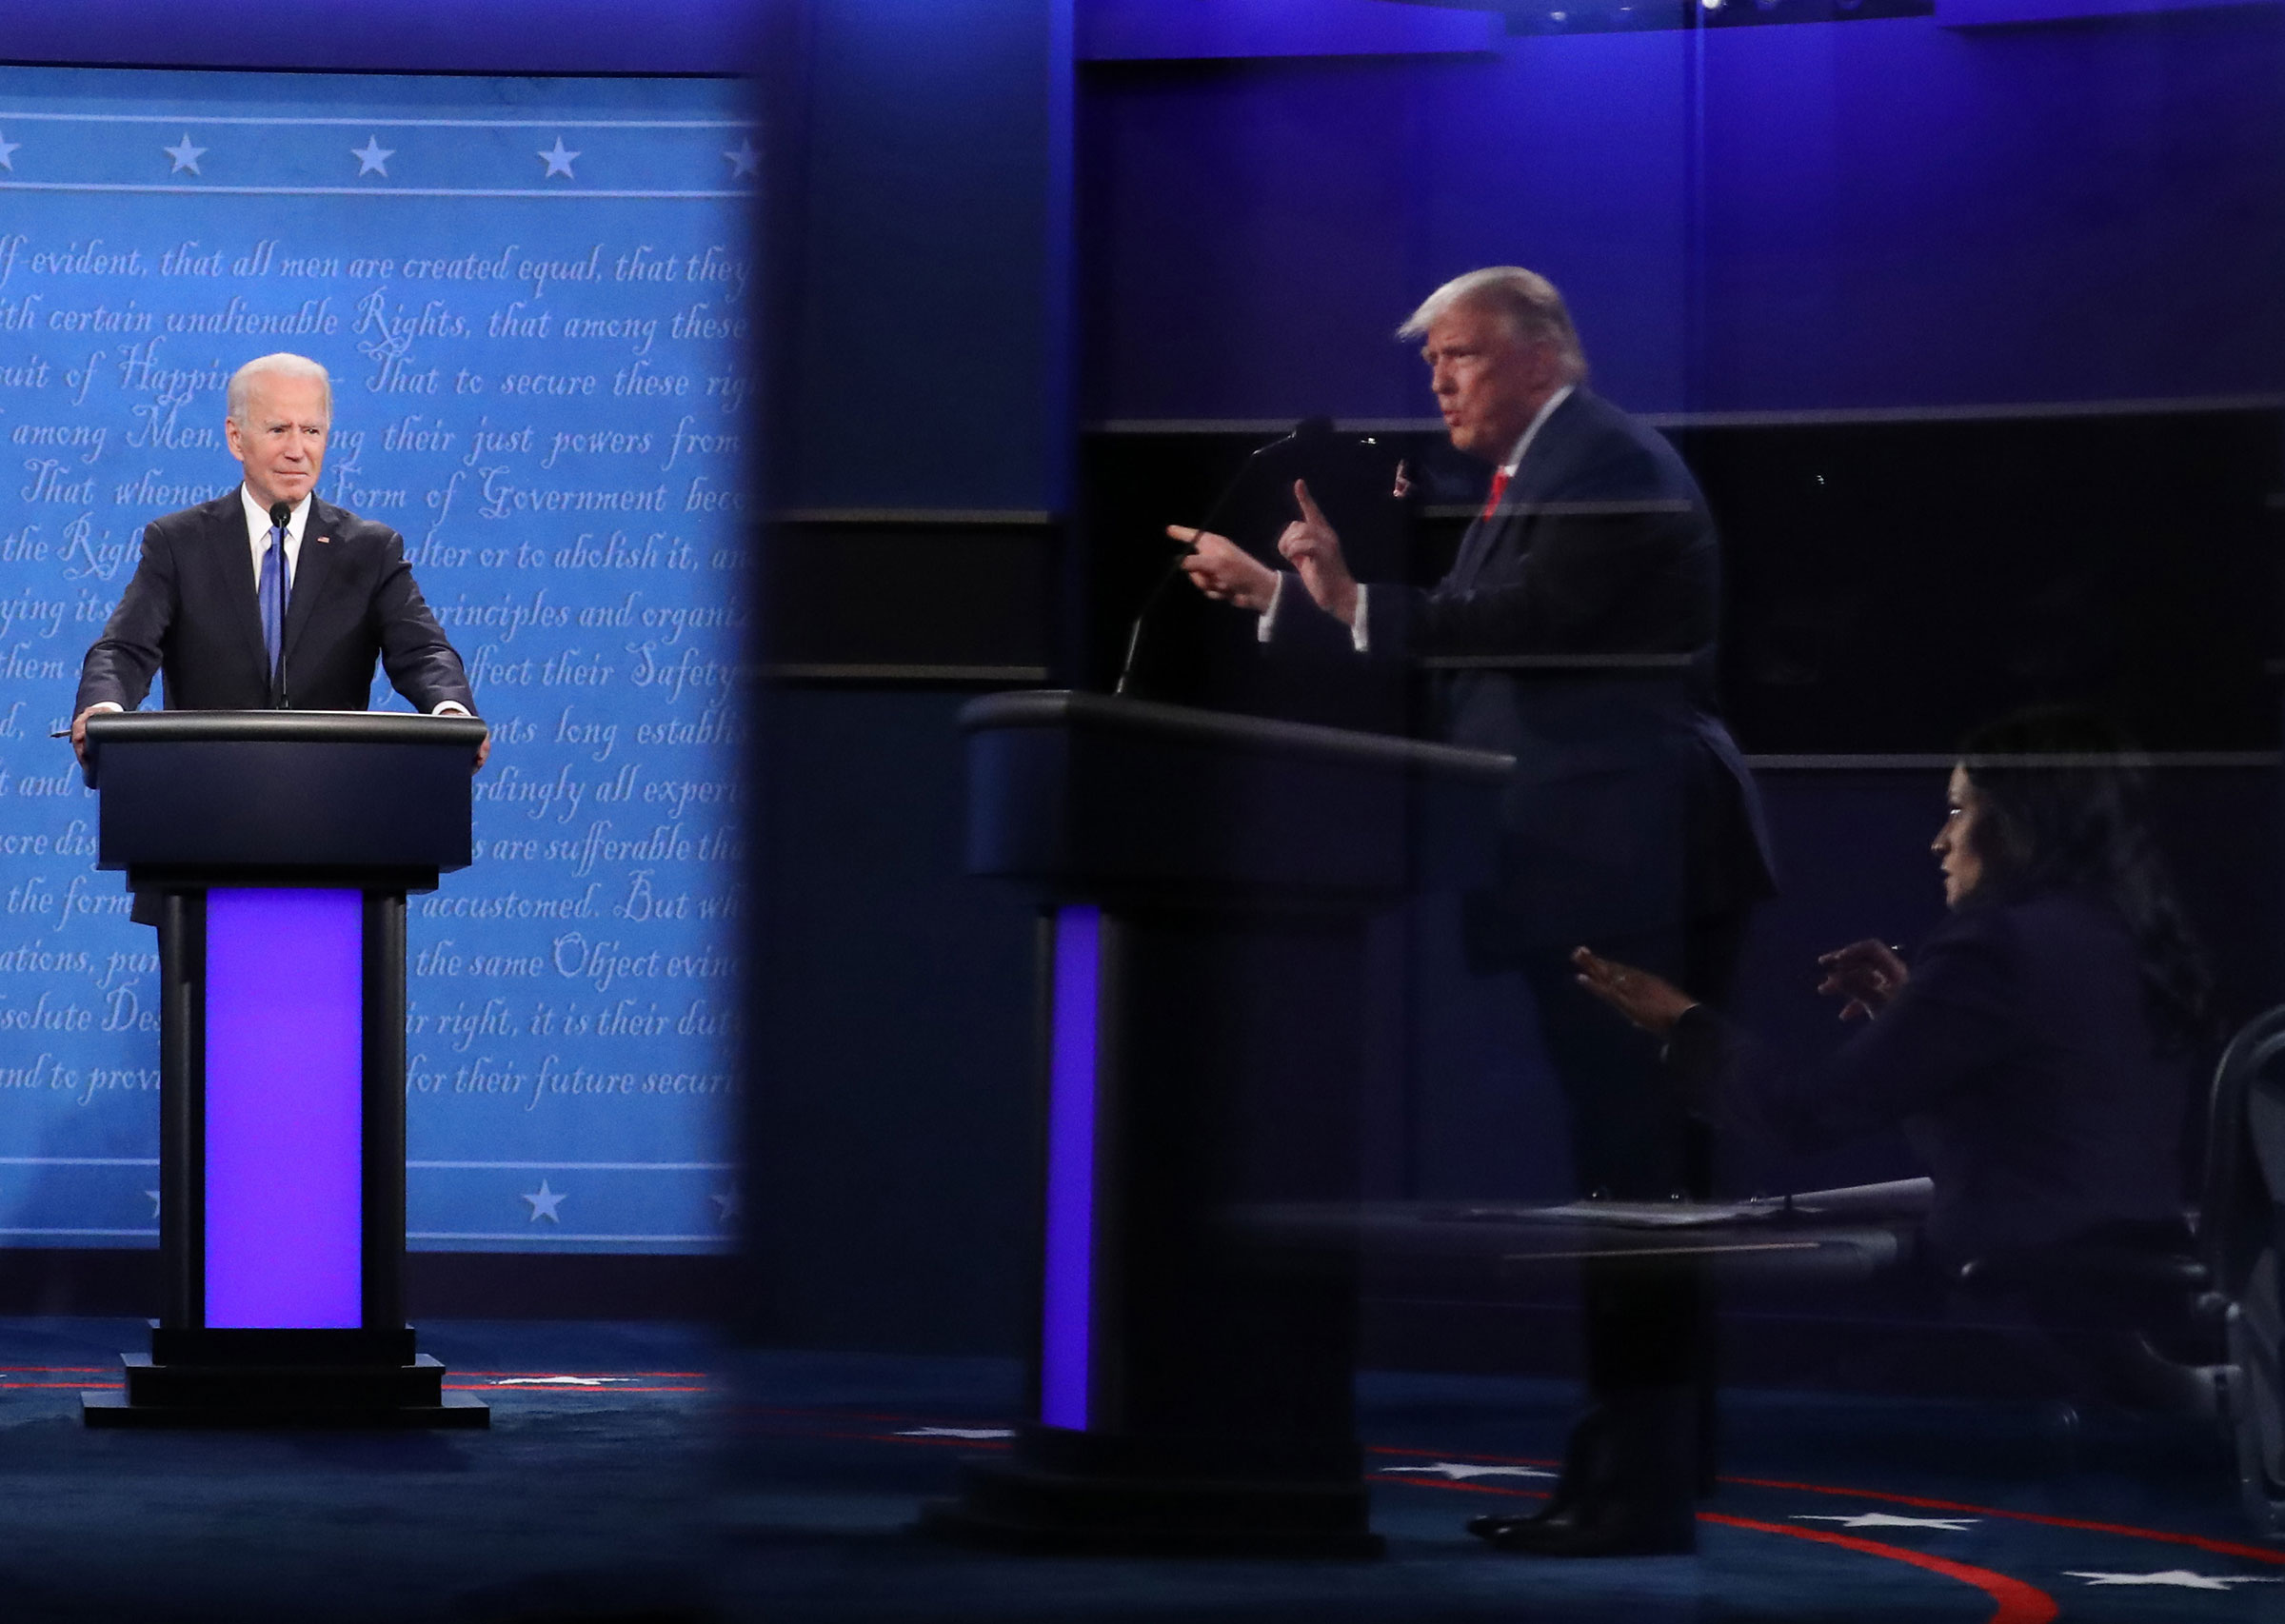 President Donald Trump and Moderator Kristen Welker, seen in a reflection, and Democratic presidential nominee Joe Biden participate in the final presidential debate in Nashville, Tenn. on Oct. 22, 2020.